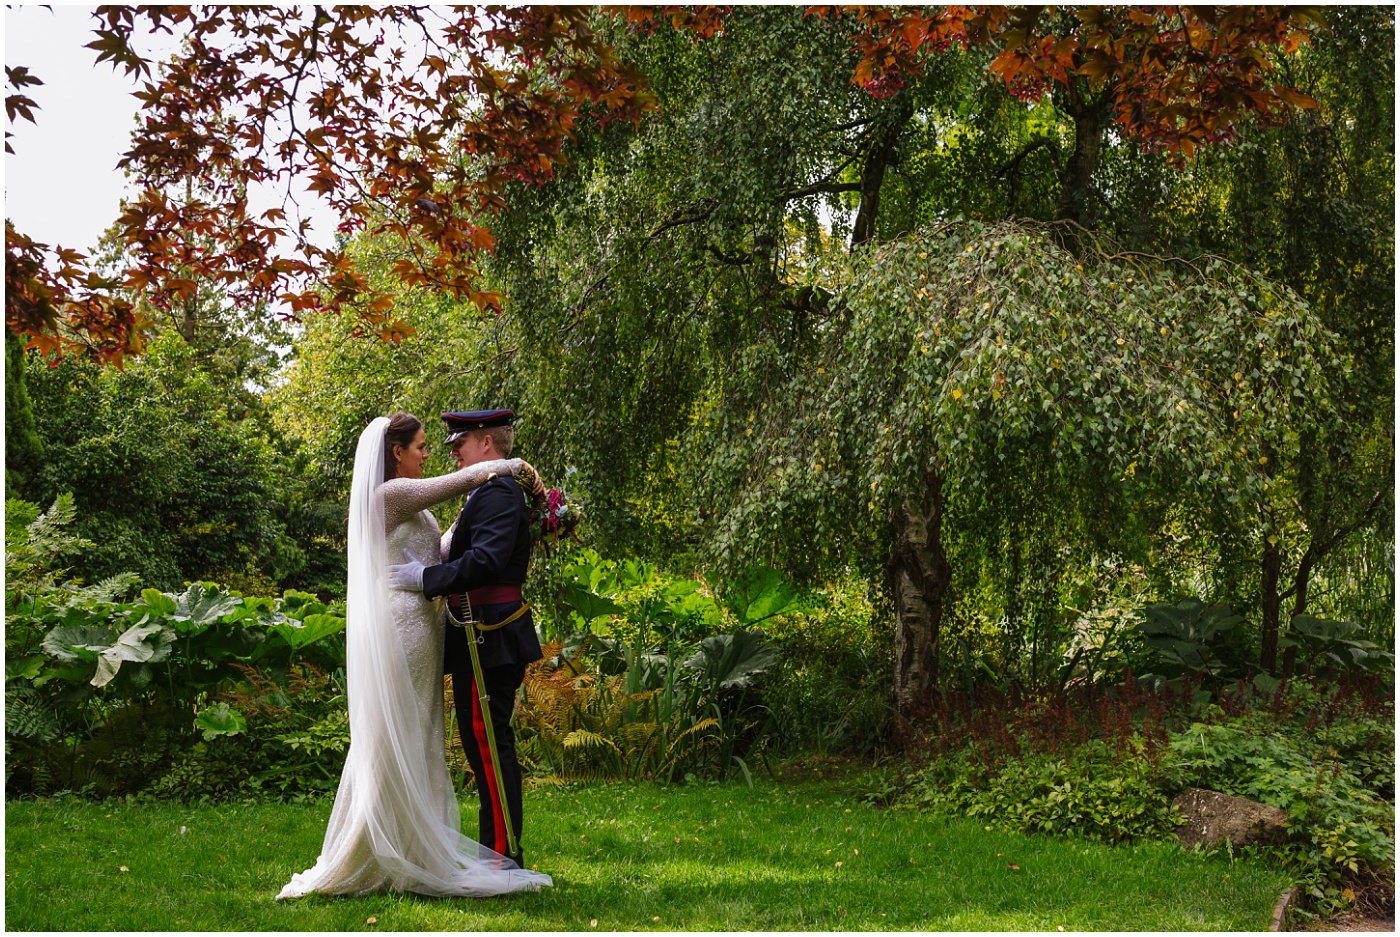 military wedding portraits at Fletcher moss gardens in didsbury